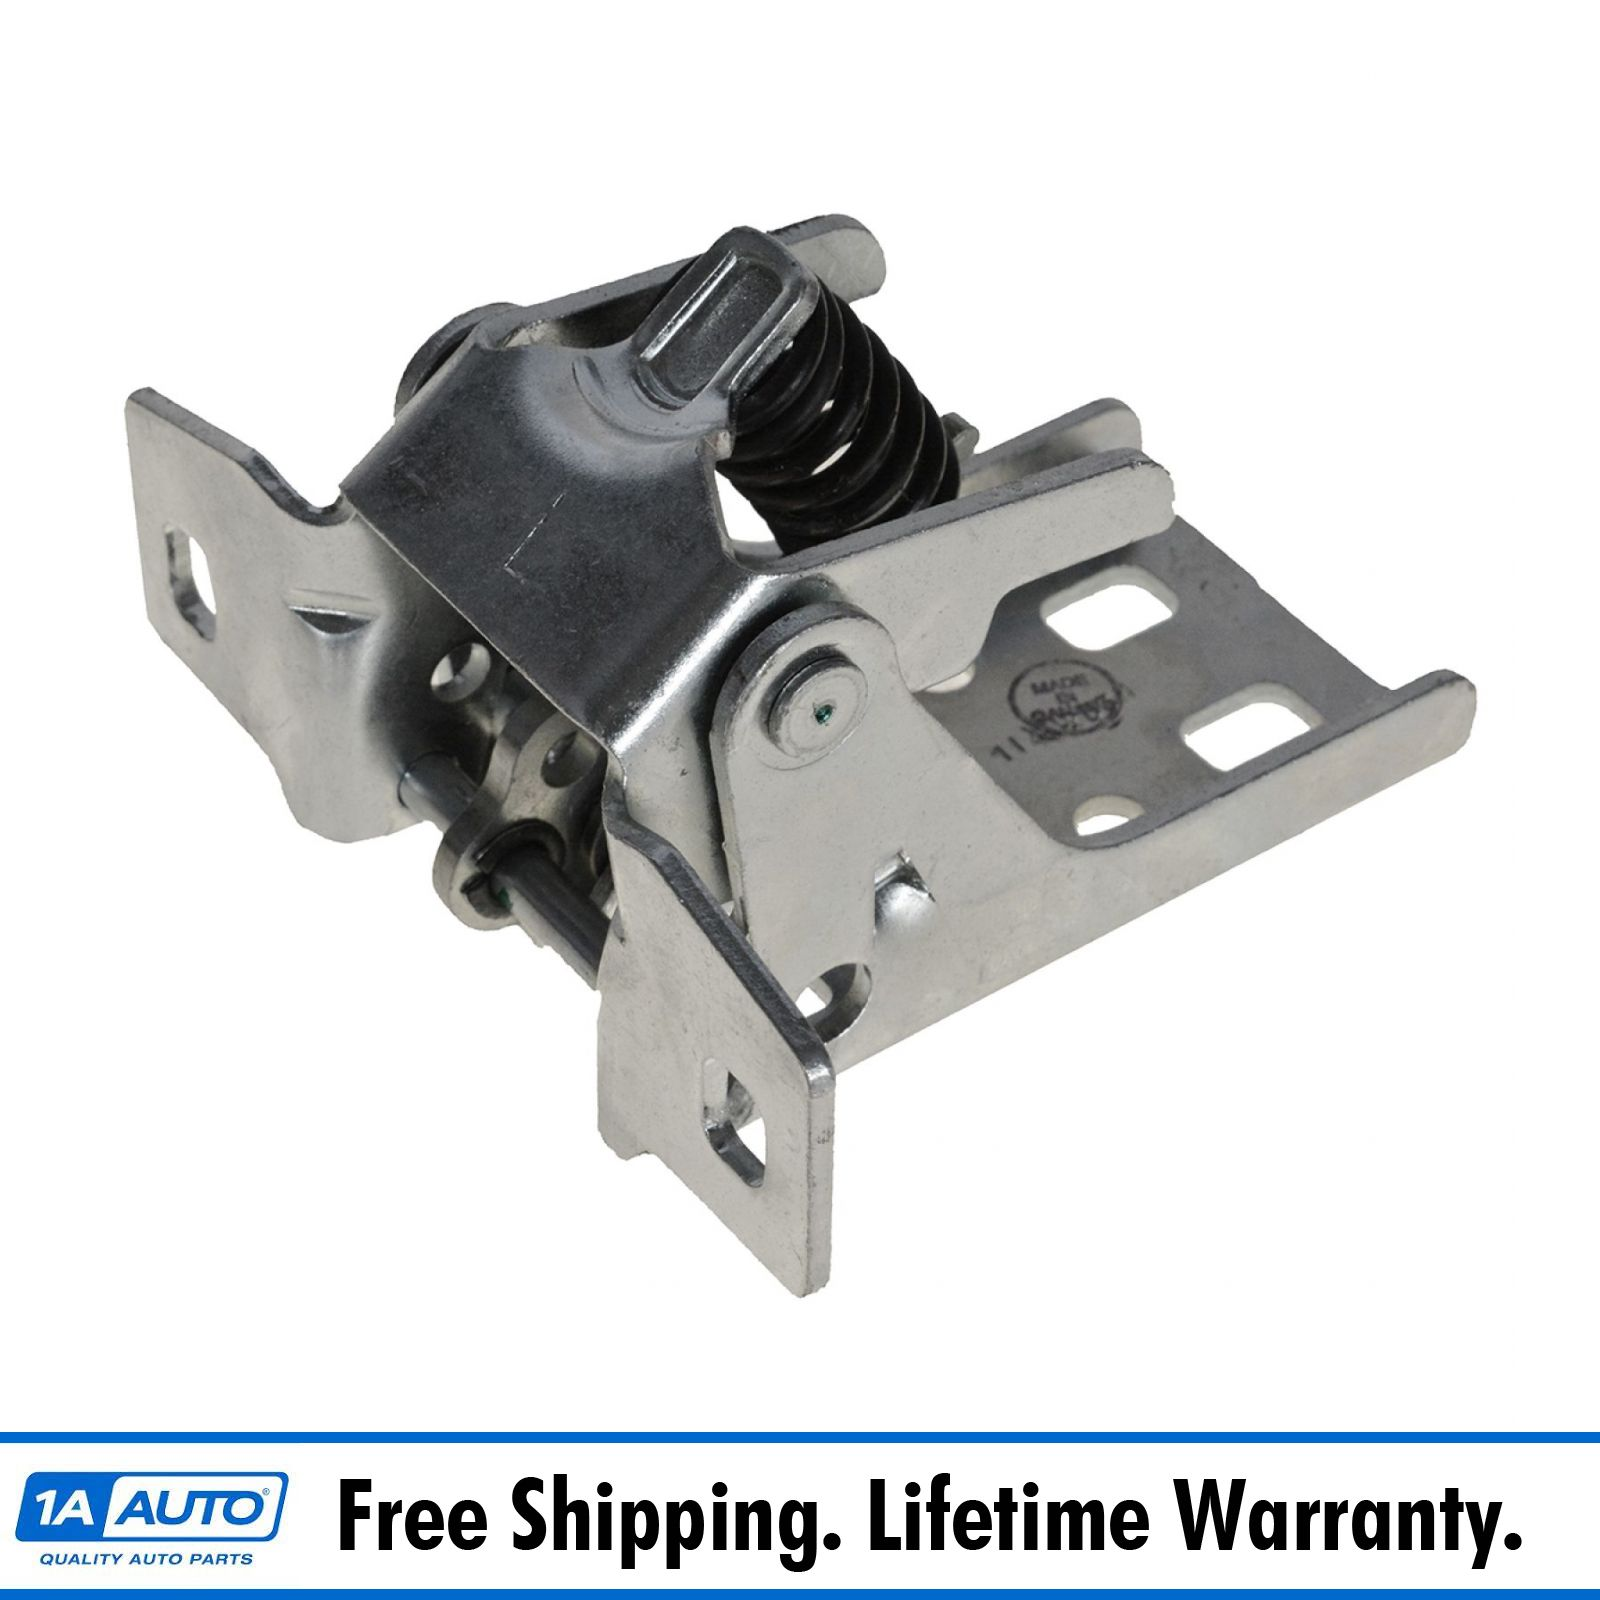 Power Steering Pump For 2011-2013 Ford Transit Connect 2.0L 4 Cyl 2012 Cardone